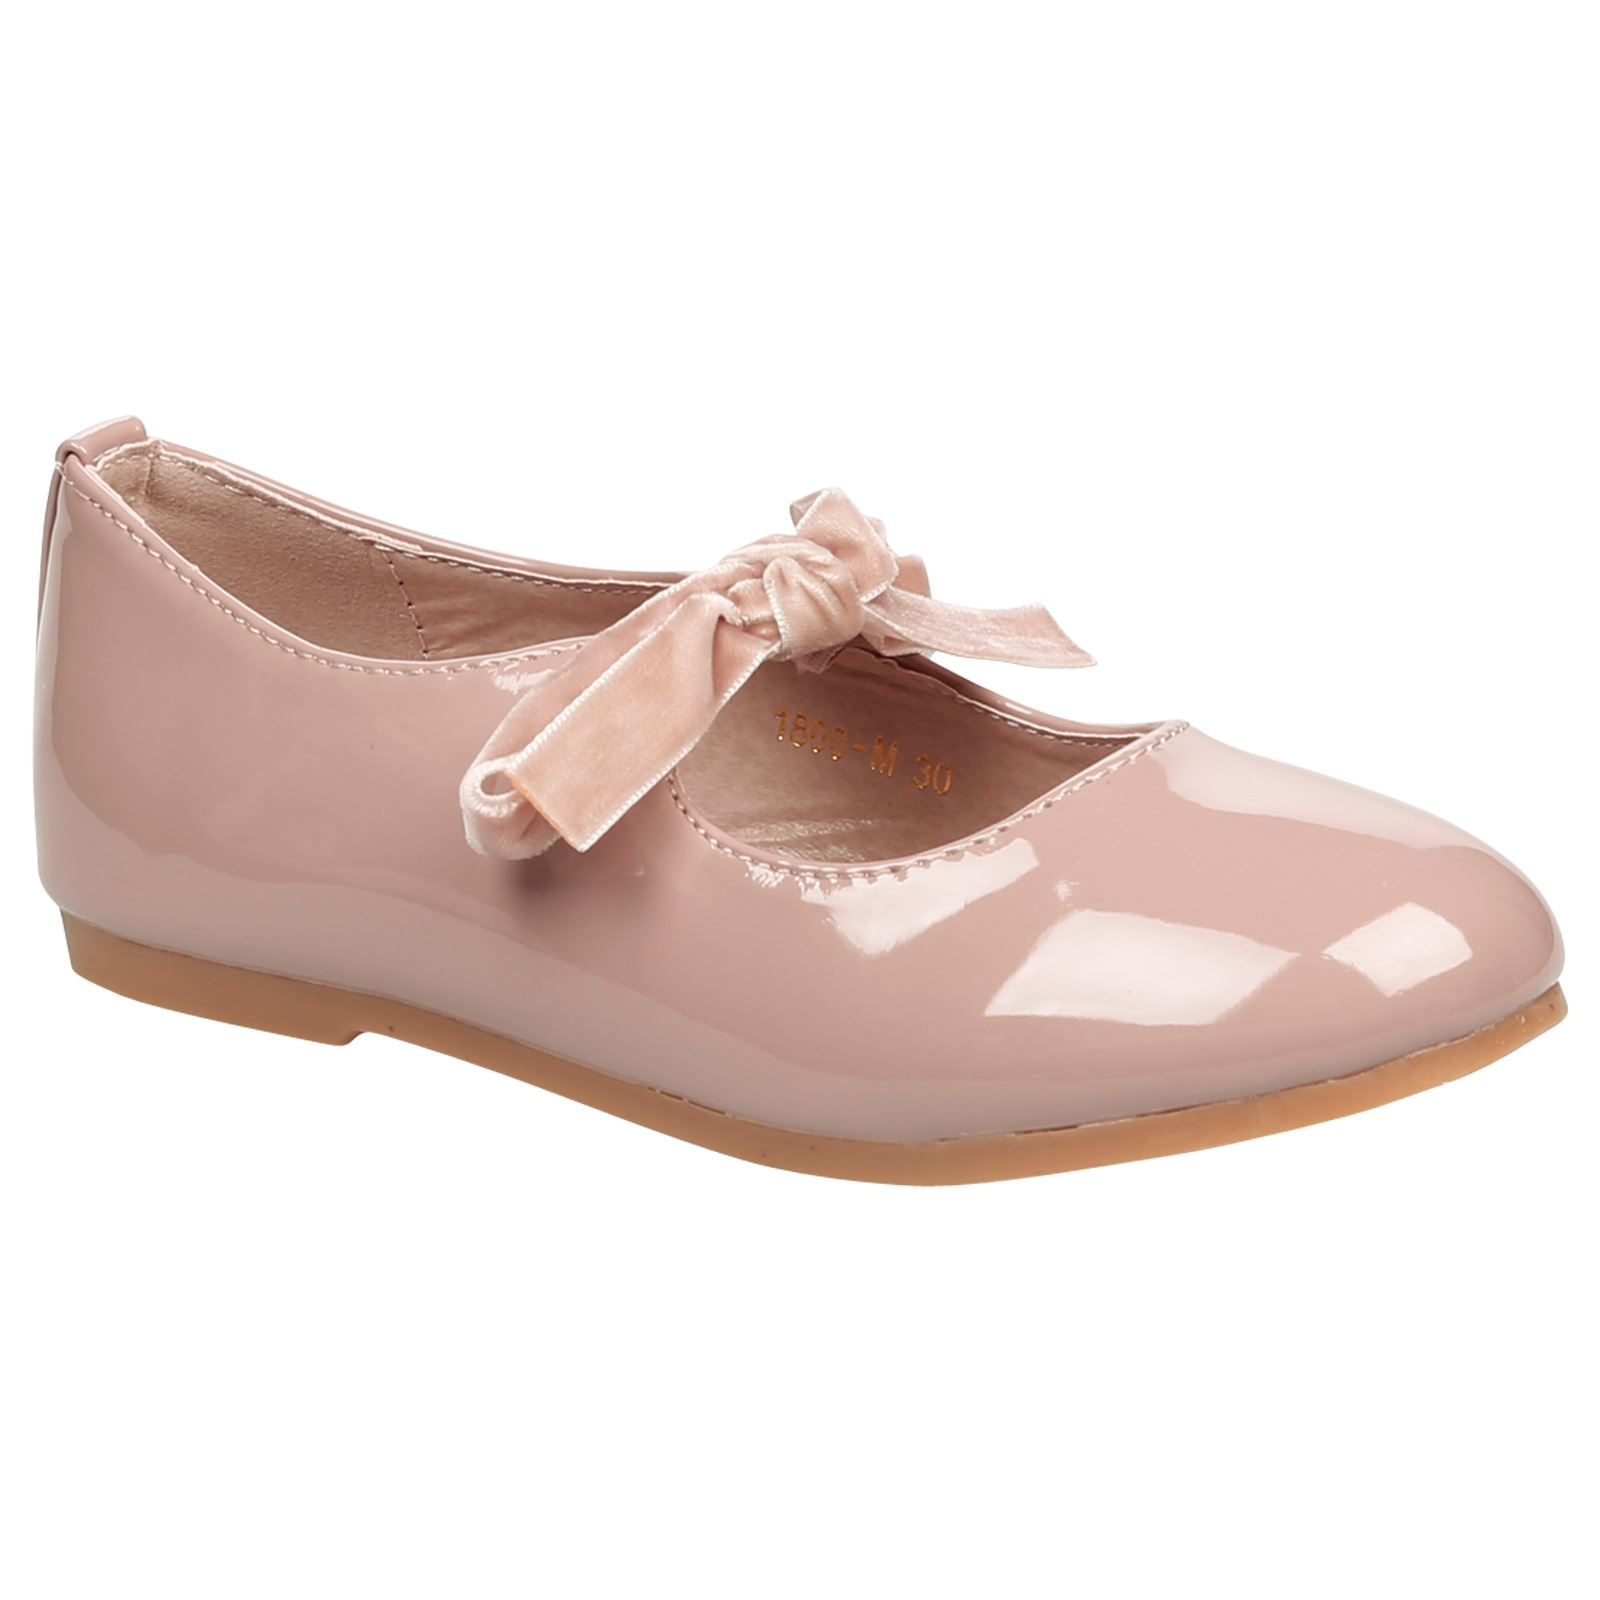 Peony Girls Kids Flat Low Heel Lace Up Ribbon Bow Mary Jane Shoes Childrens Size